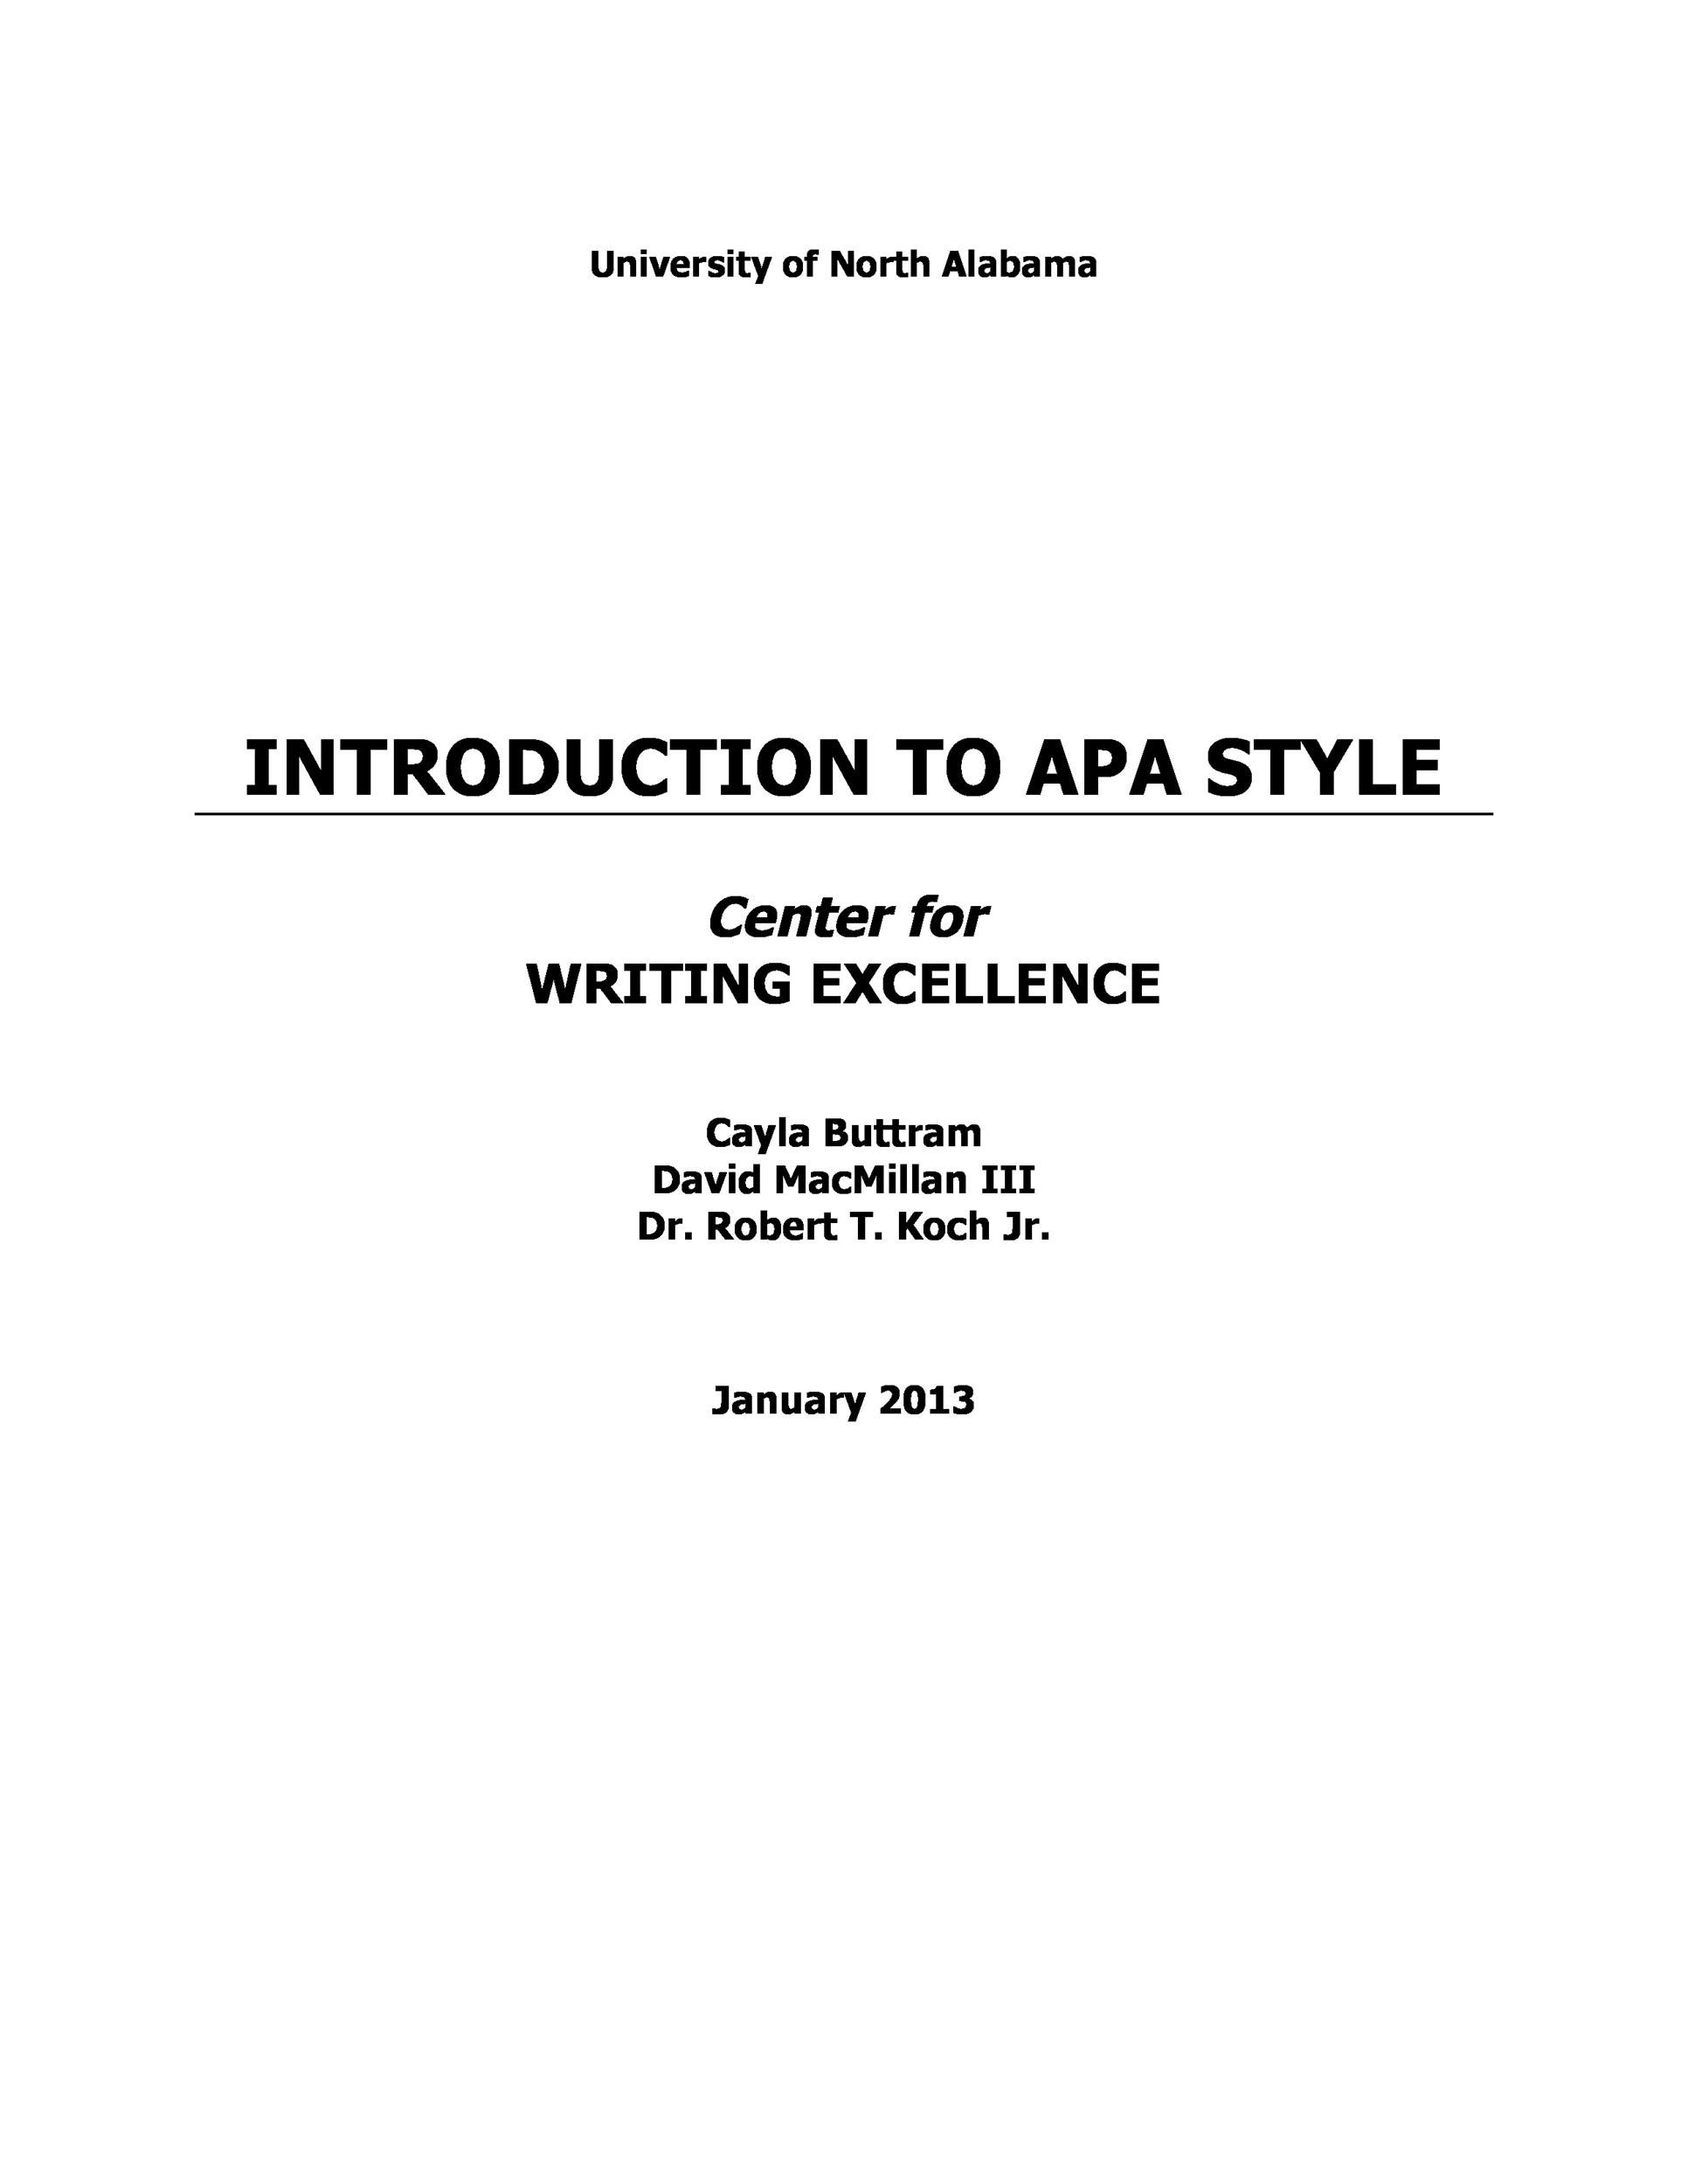 Writing Resources - How to Write an APA Research Paper